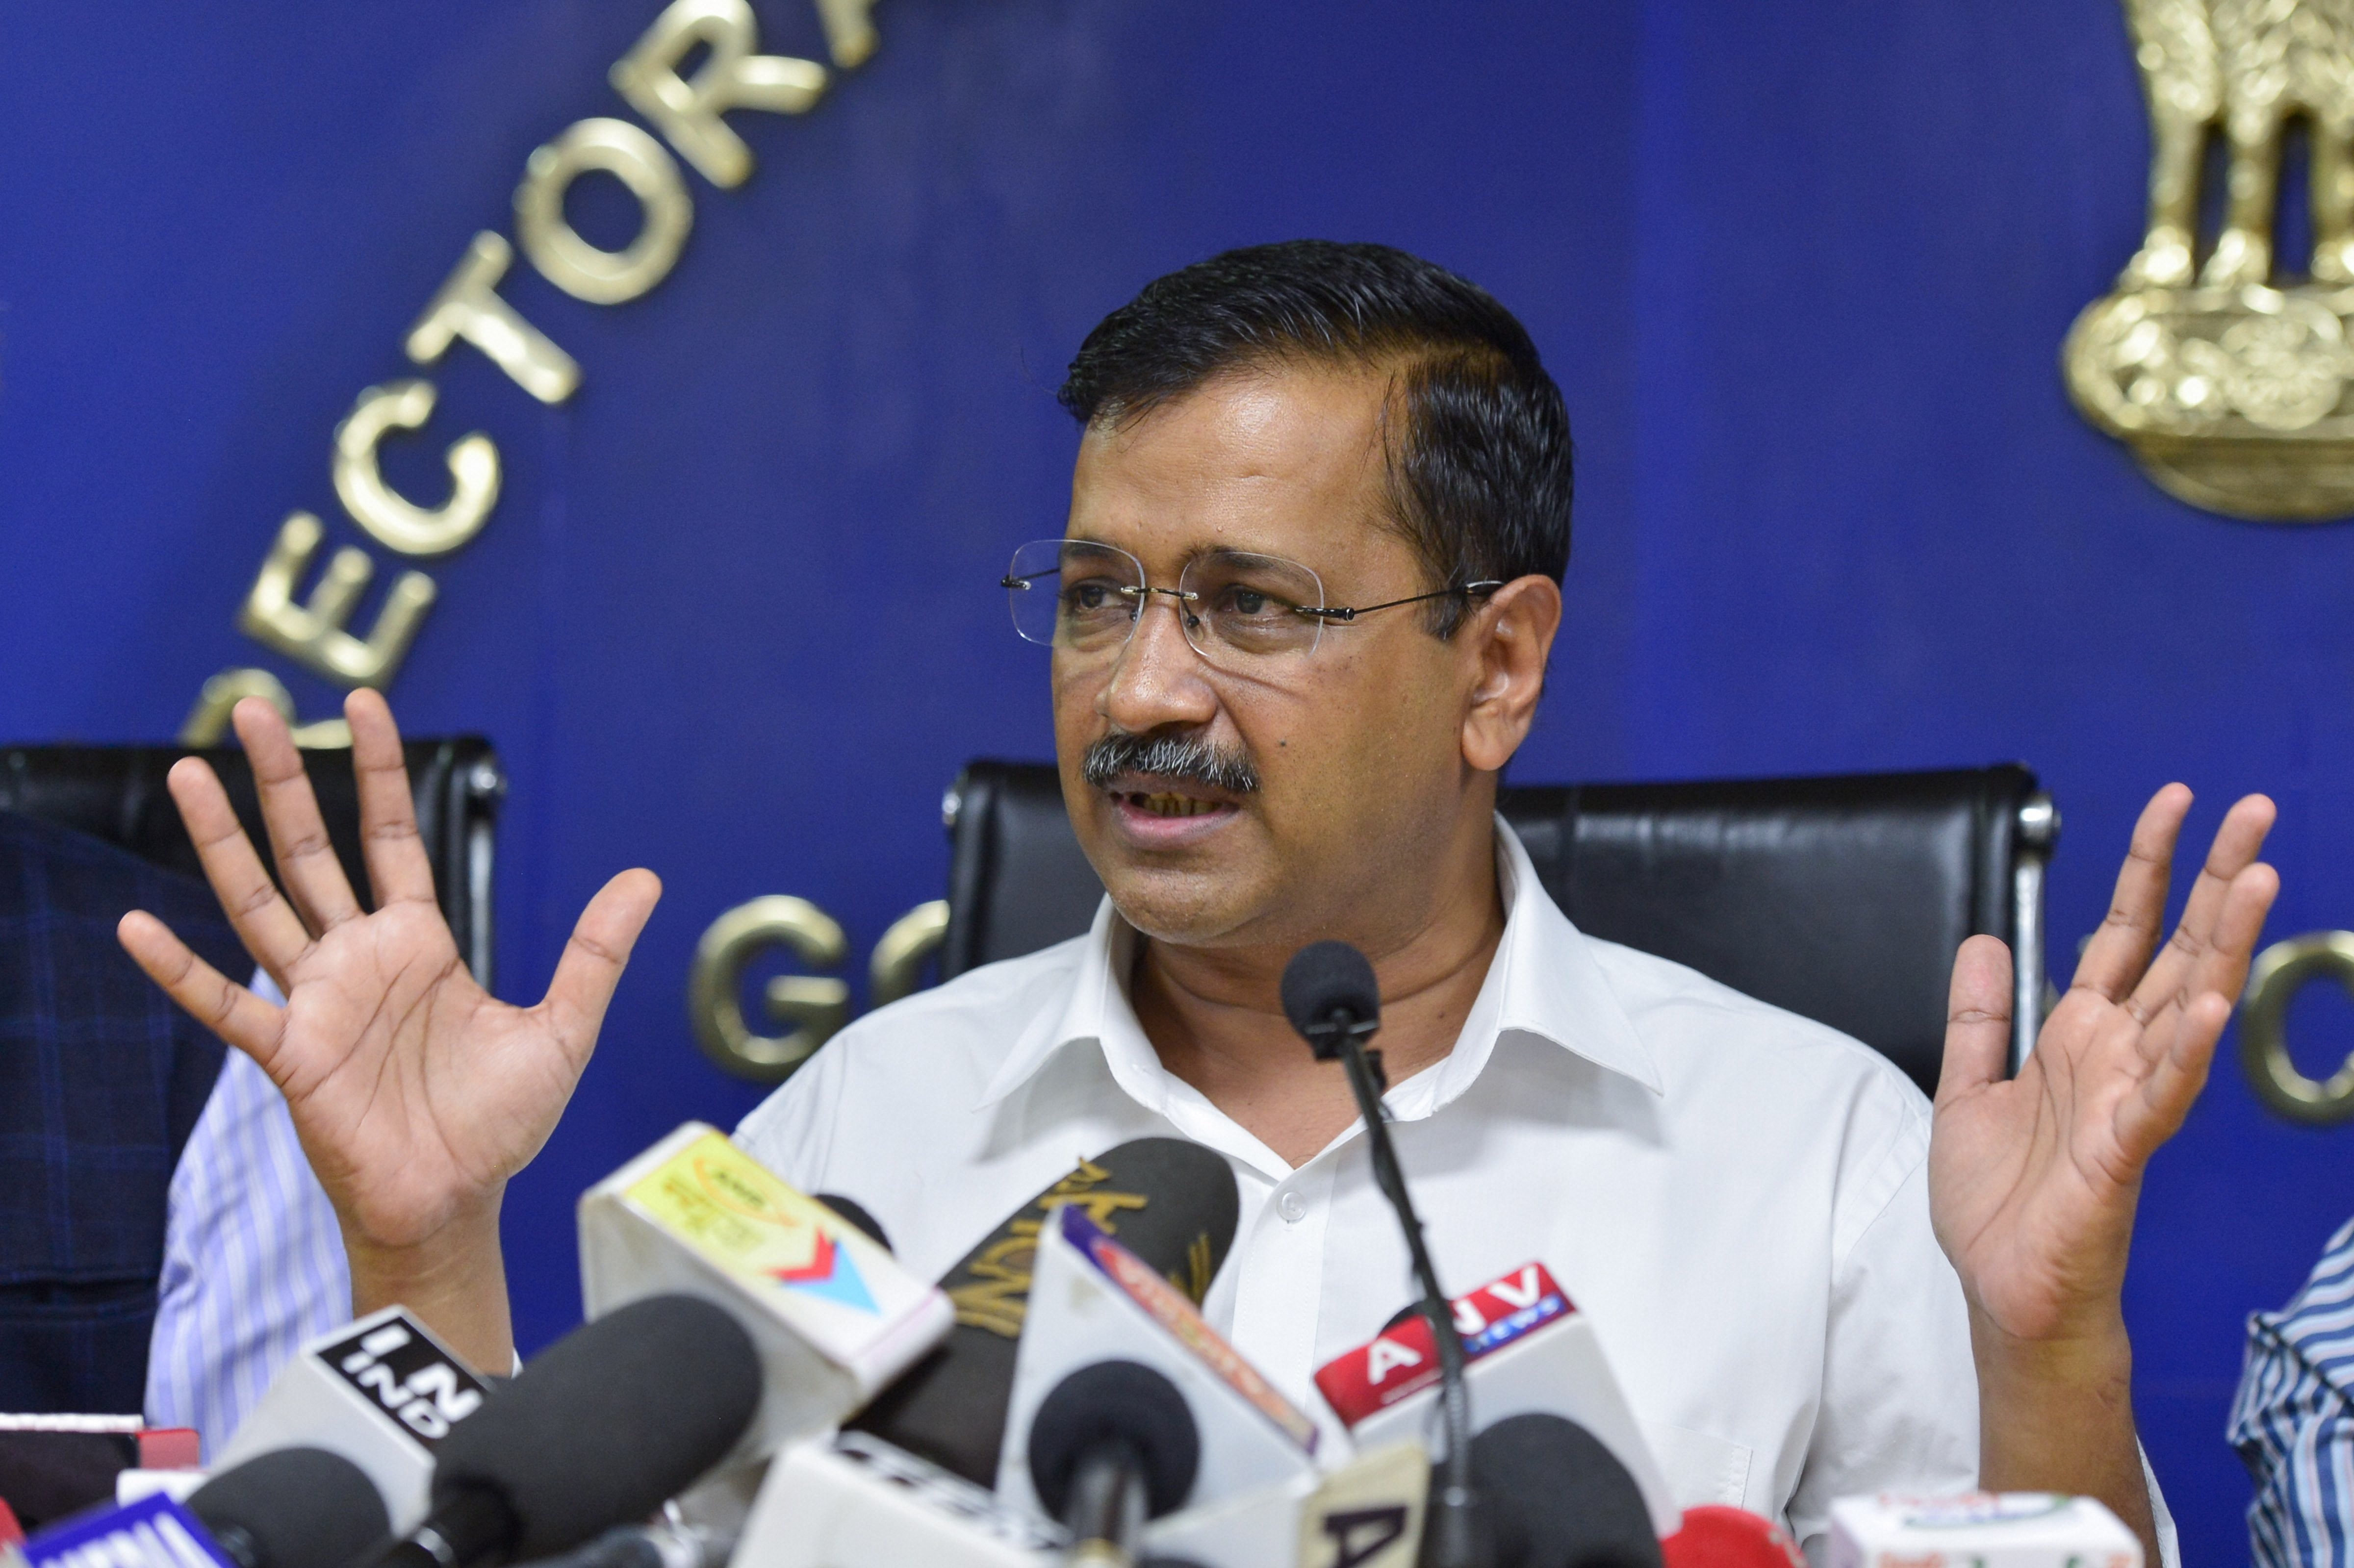 """Arvind Kejriwal said: """"We have seen a considerable rise in the number of Covid-19 cases in Delhi in the last few days. We are taking all measures possible to control the crisis. I am sure that our strategy to control the crisis will be successful."""